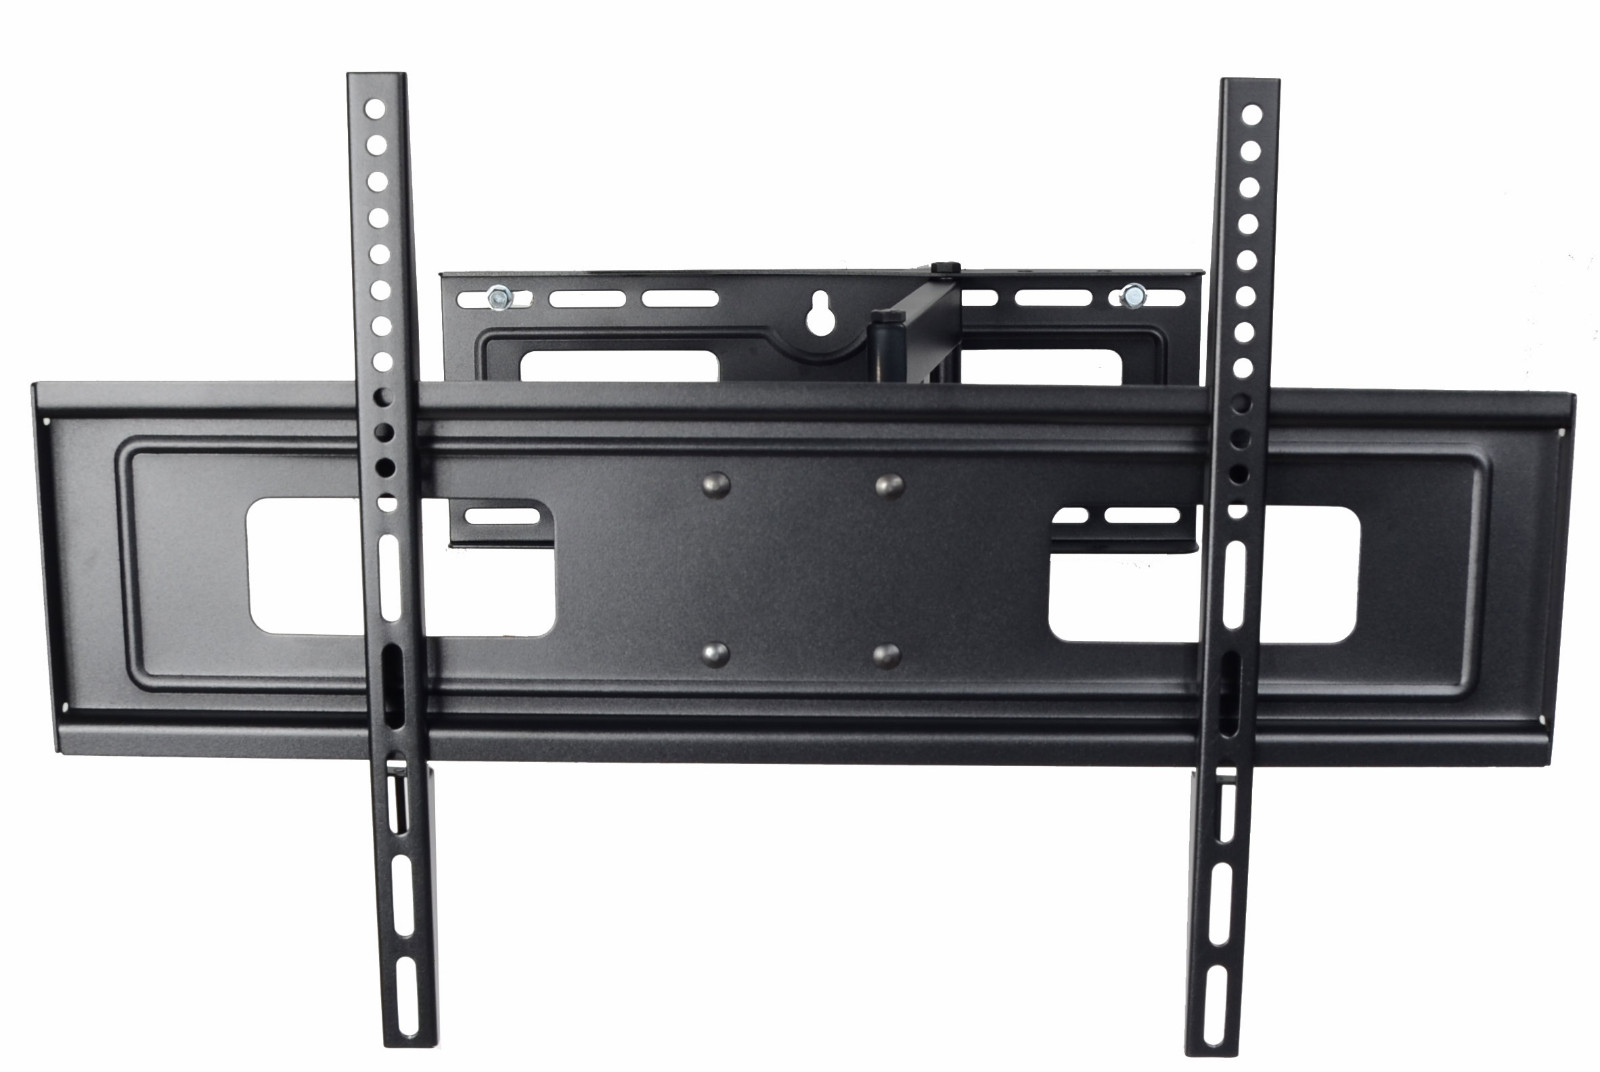 sony tv model kdl60r510a. videosecu articulating tv wall mount for 32 40 46 50 55 60\ sony tv model kdl60r510a 0